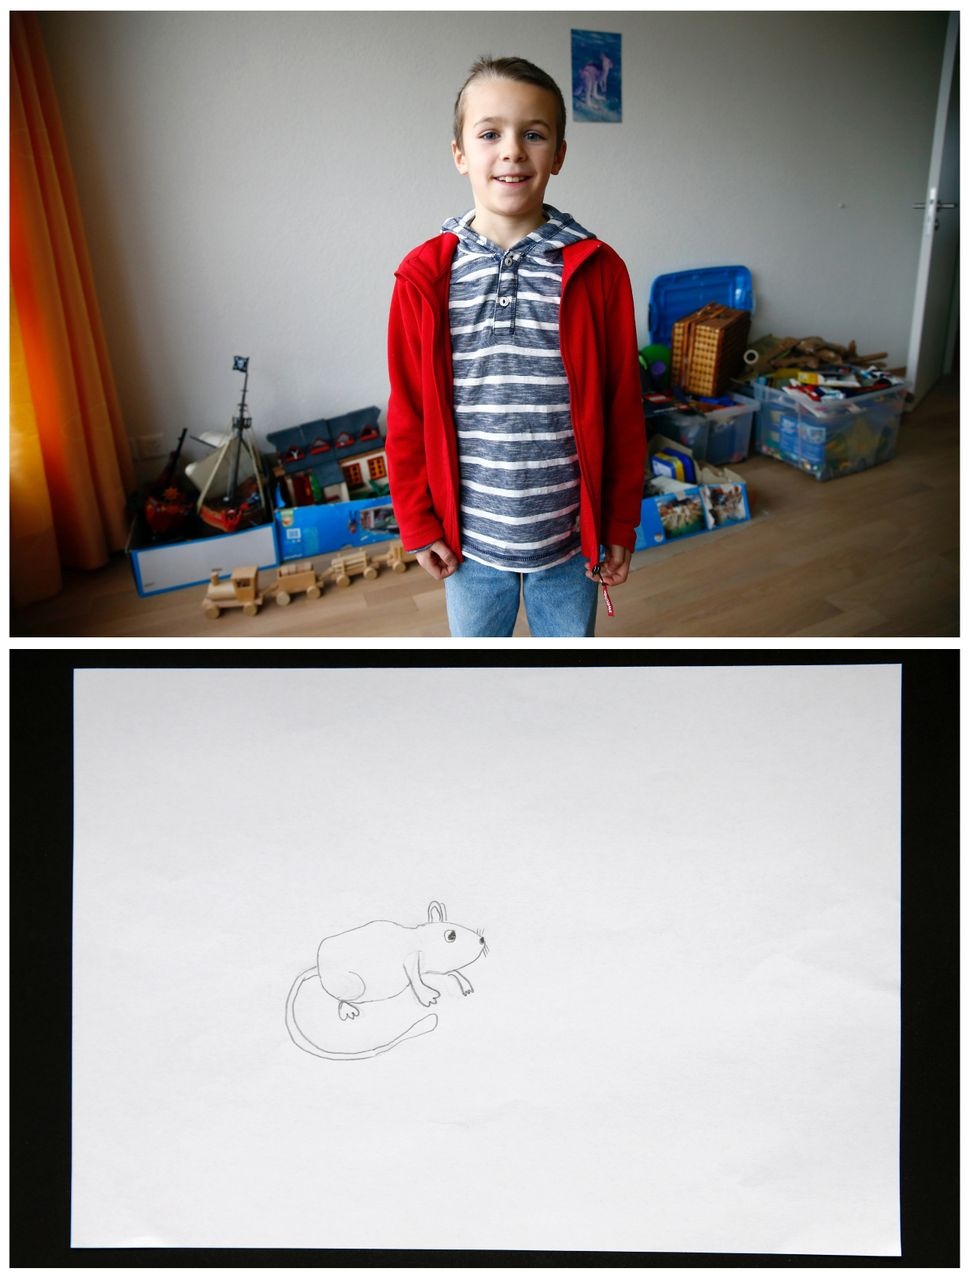 <strong>Olivier Bommeli, 8, from Bern, Switzerland:</strong> Olivier said he wants a jerboa.